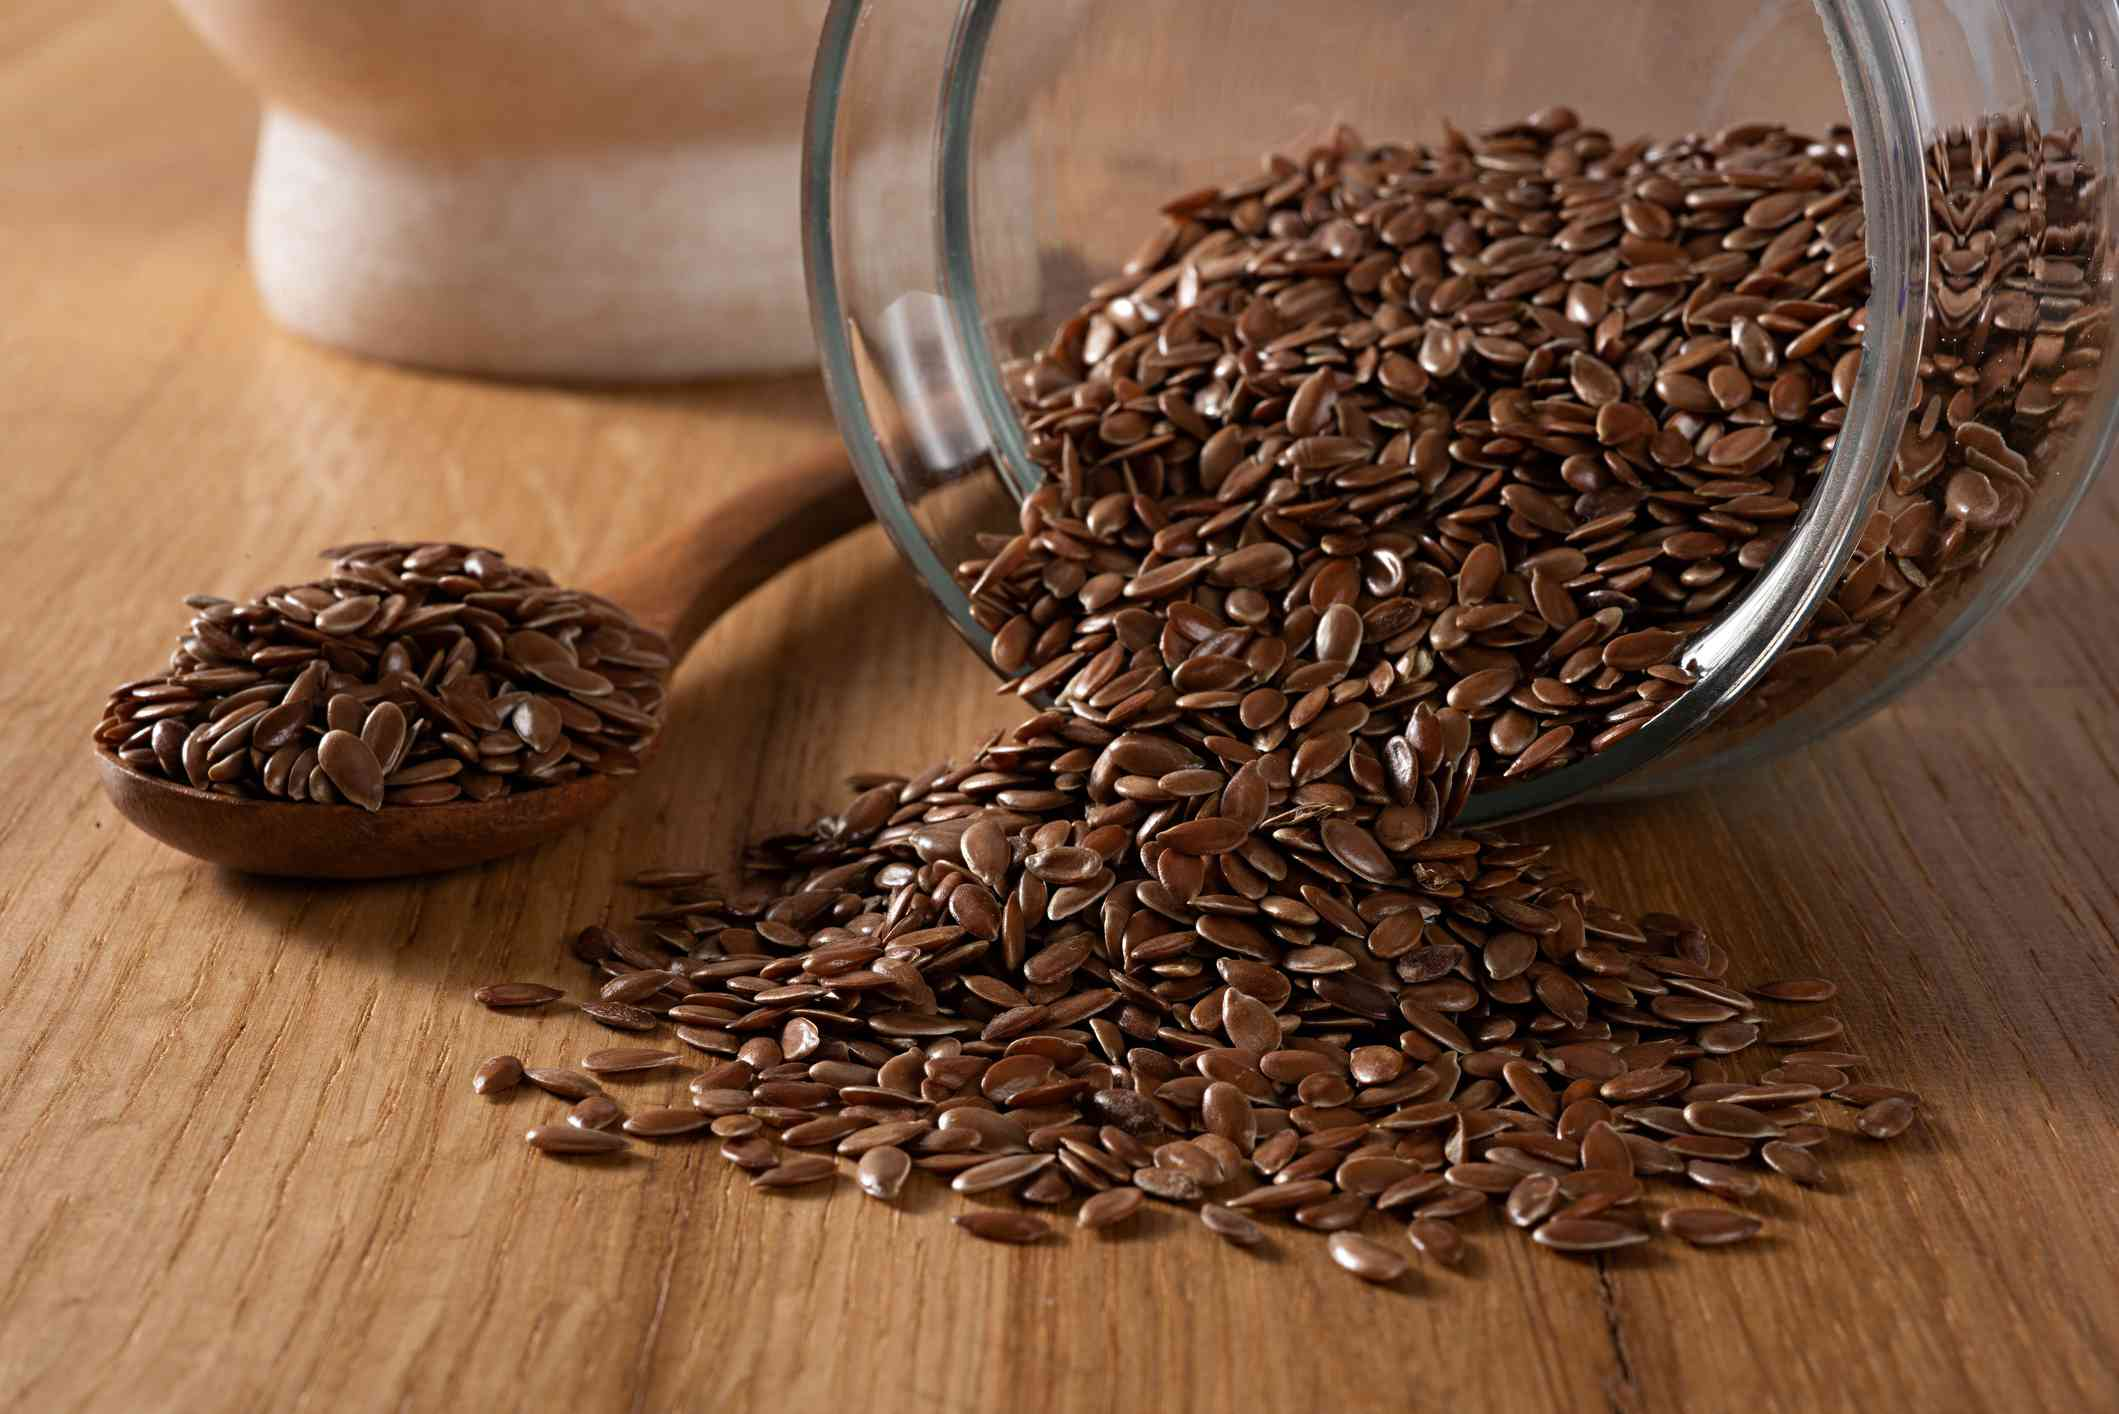 Flax seed up close.